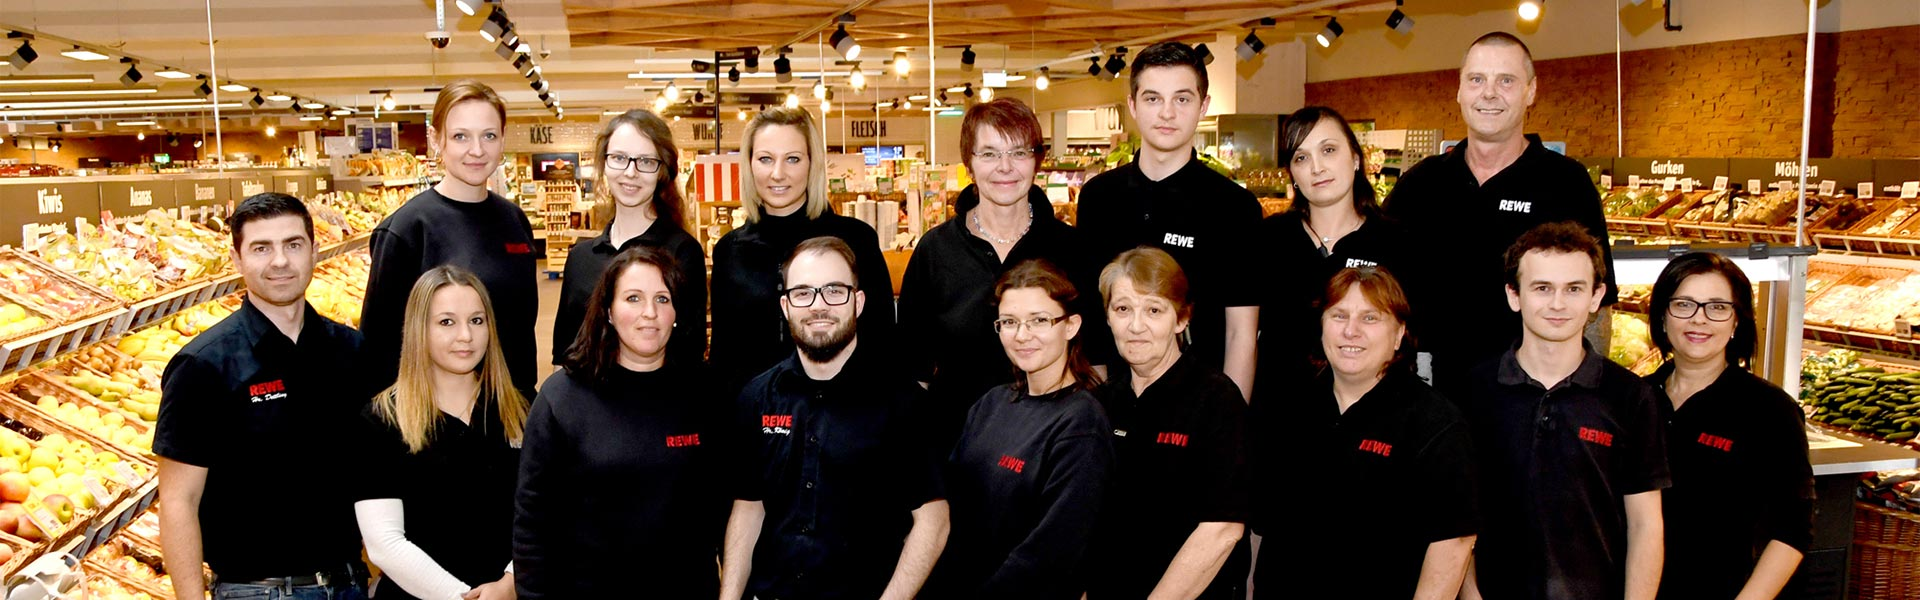 Team von REWE Dettling in Bad Schussenried